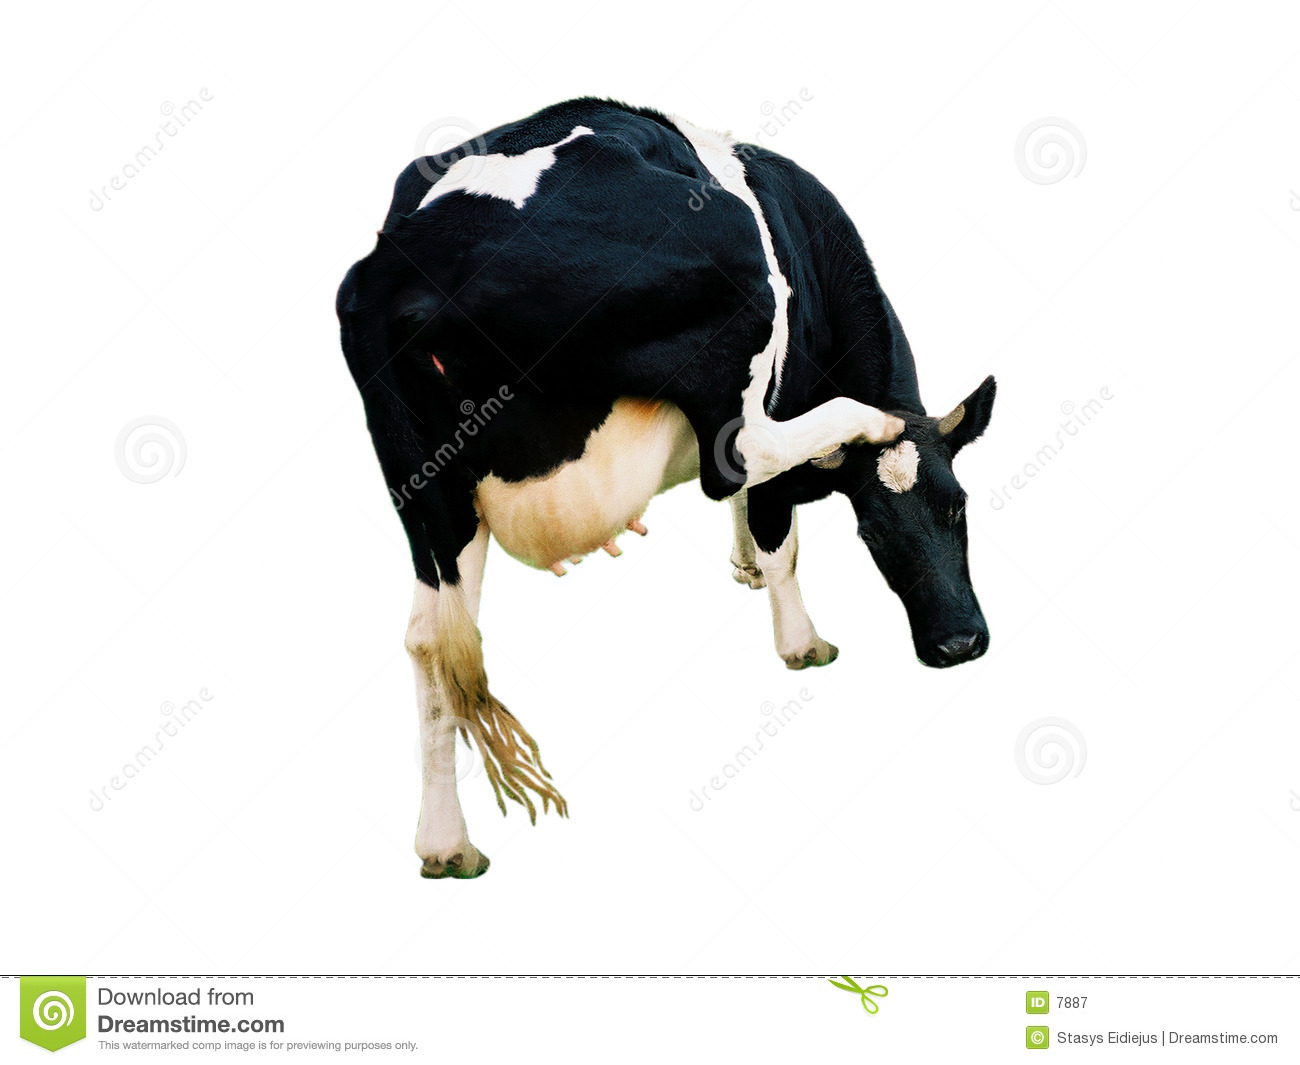 A cow, isolated